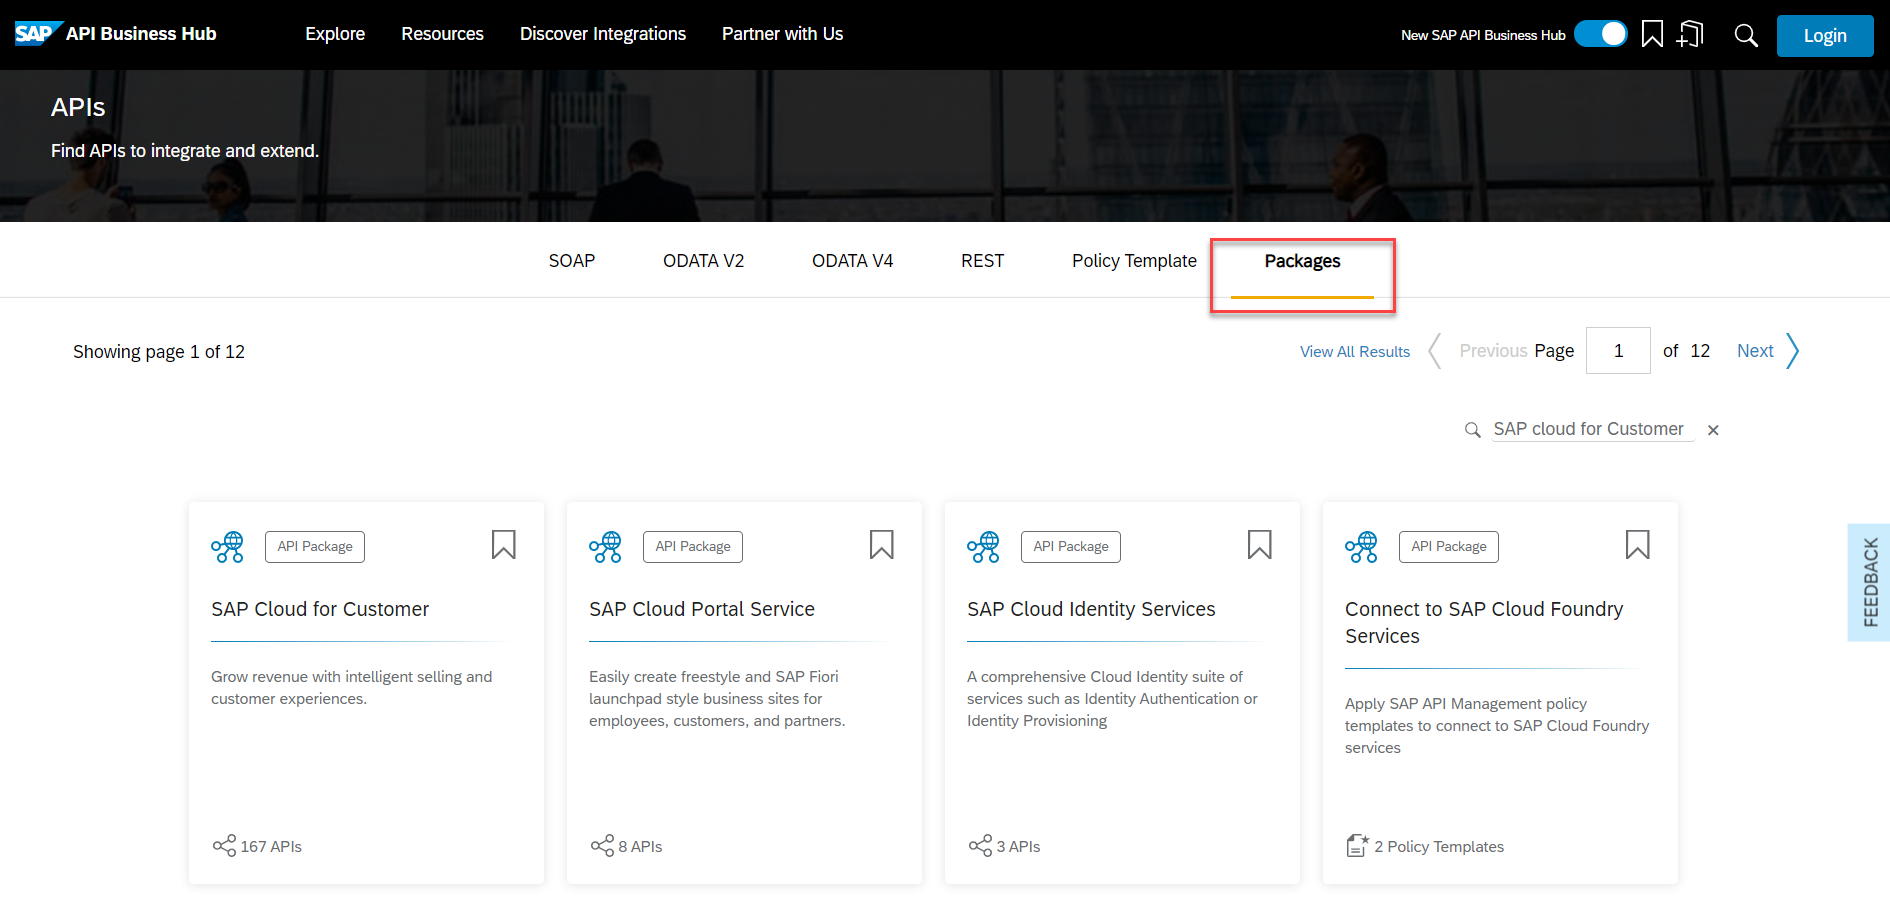 SAP API Business Hub homepage